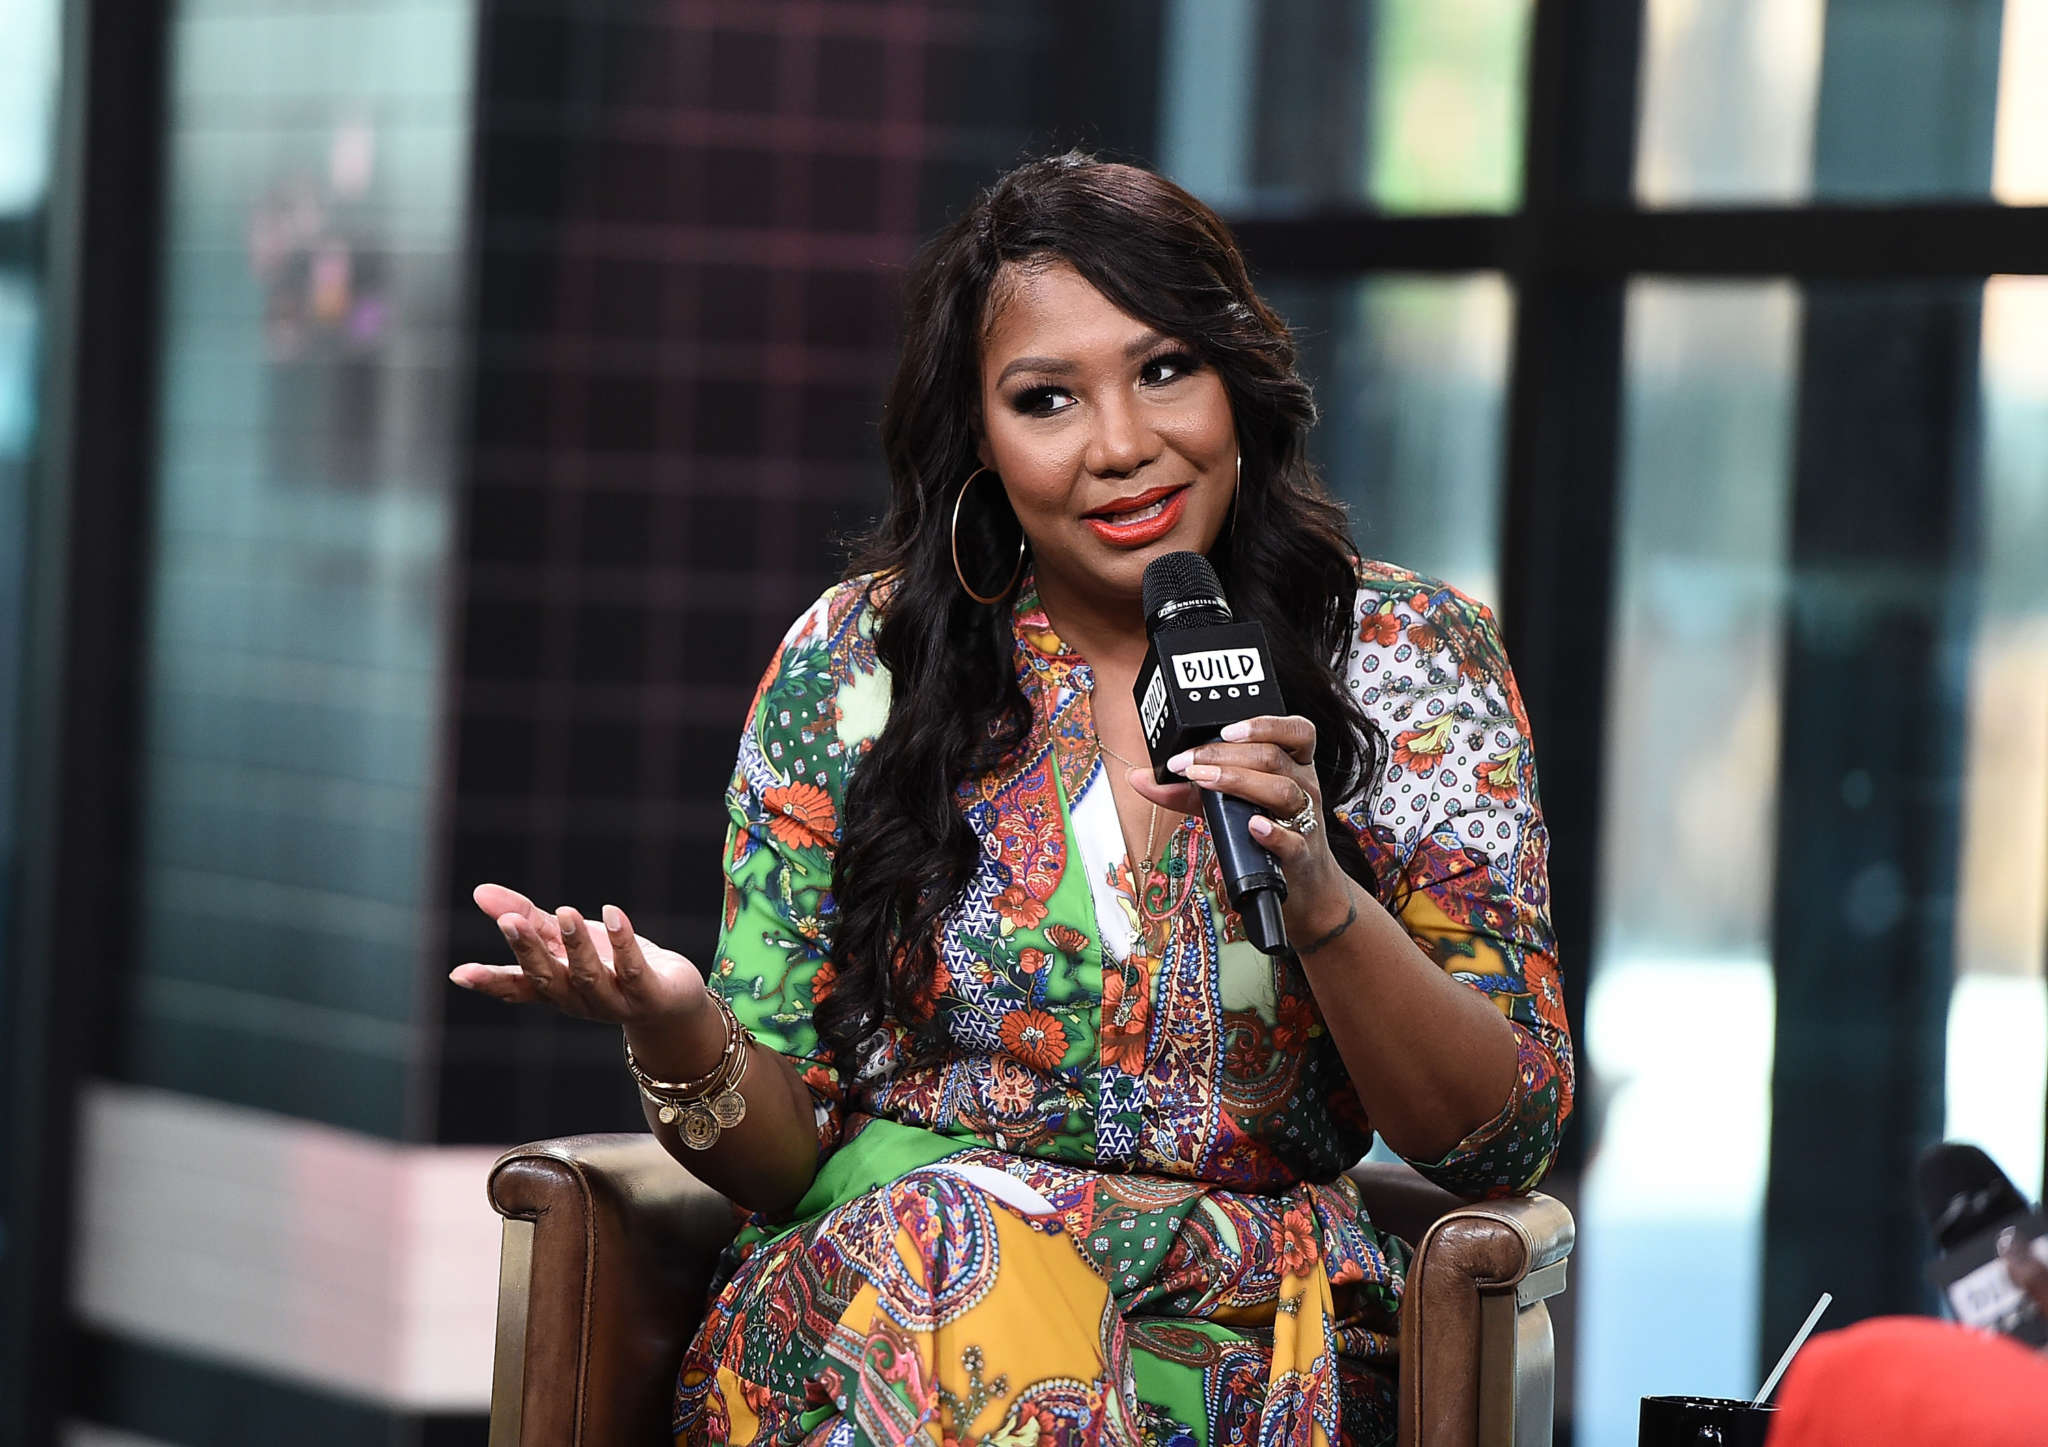 Traci Braxton And Her Sisters Received Backlash Following The Announcement For The New Family Series